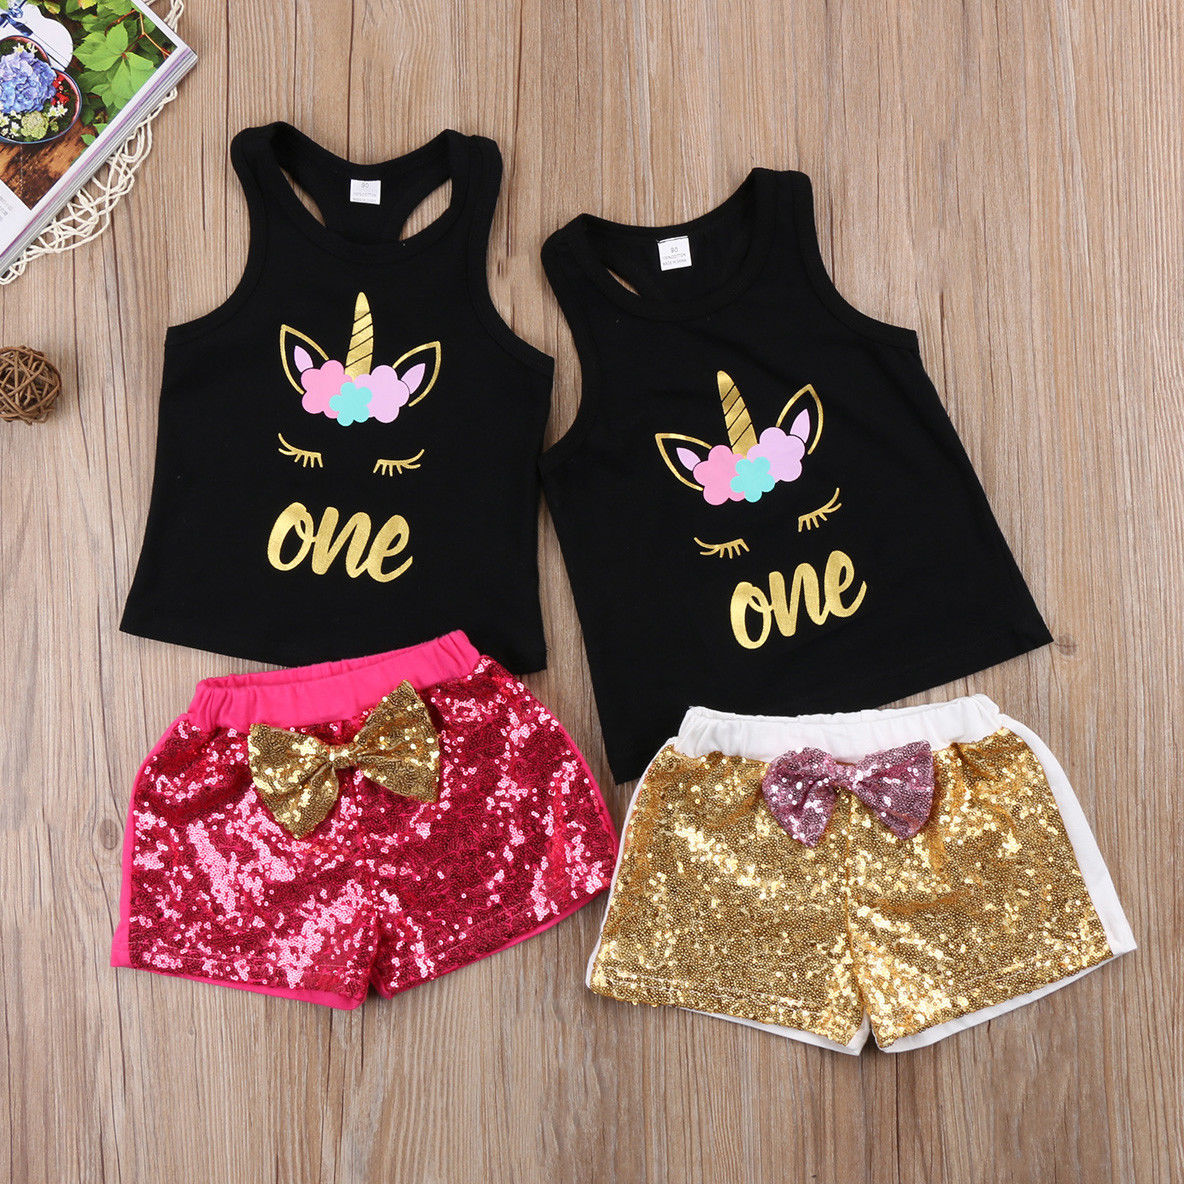 17ee7d12d3e1a Emmababy Summer Toddler Kids Baby Girls Clothes Unicorn T-shirt Tops Shorts  Sequins Baby 2 PCS Outfits Baby Clothing Cute Set